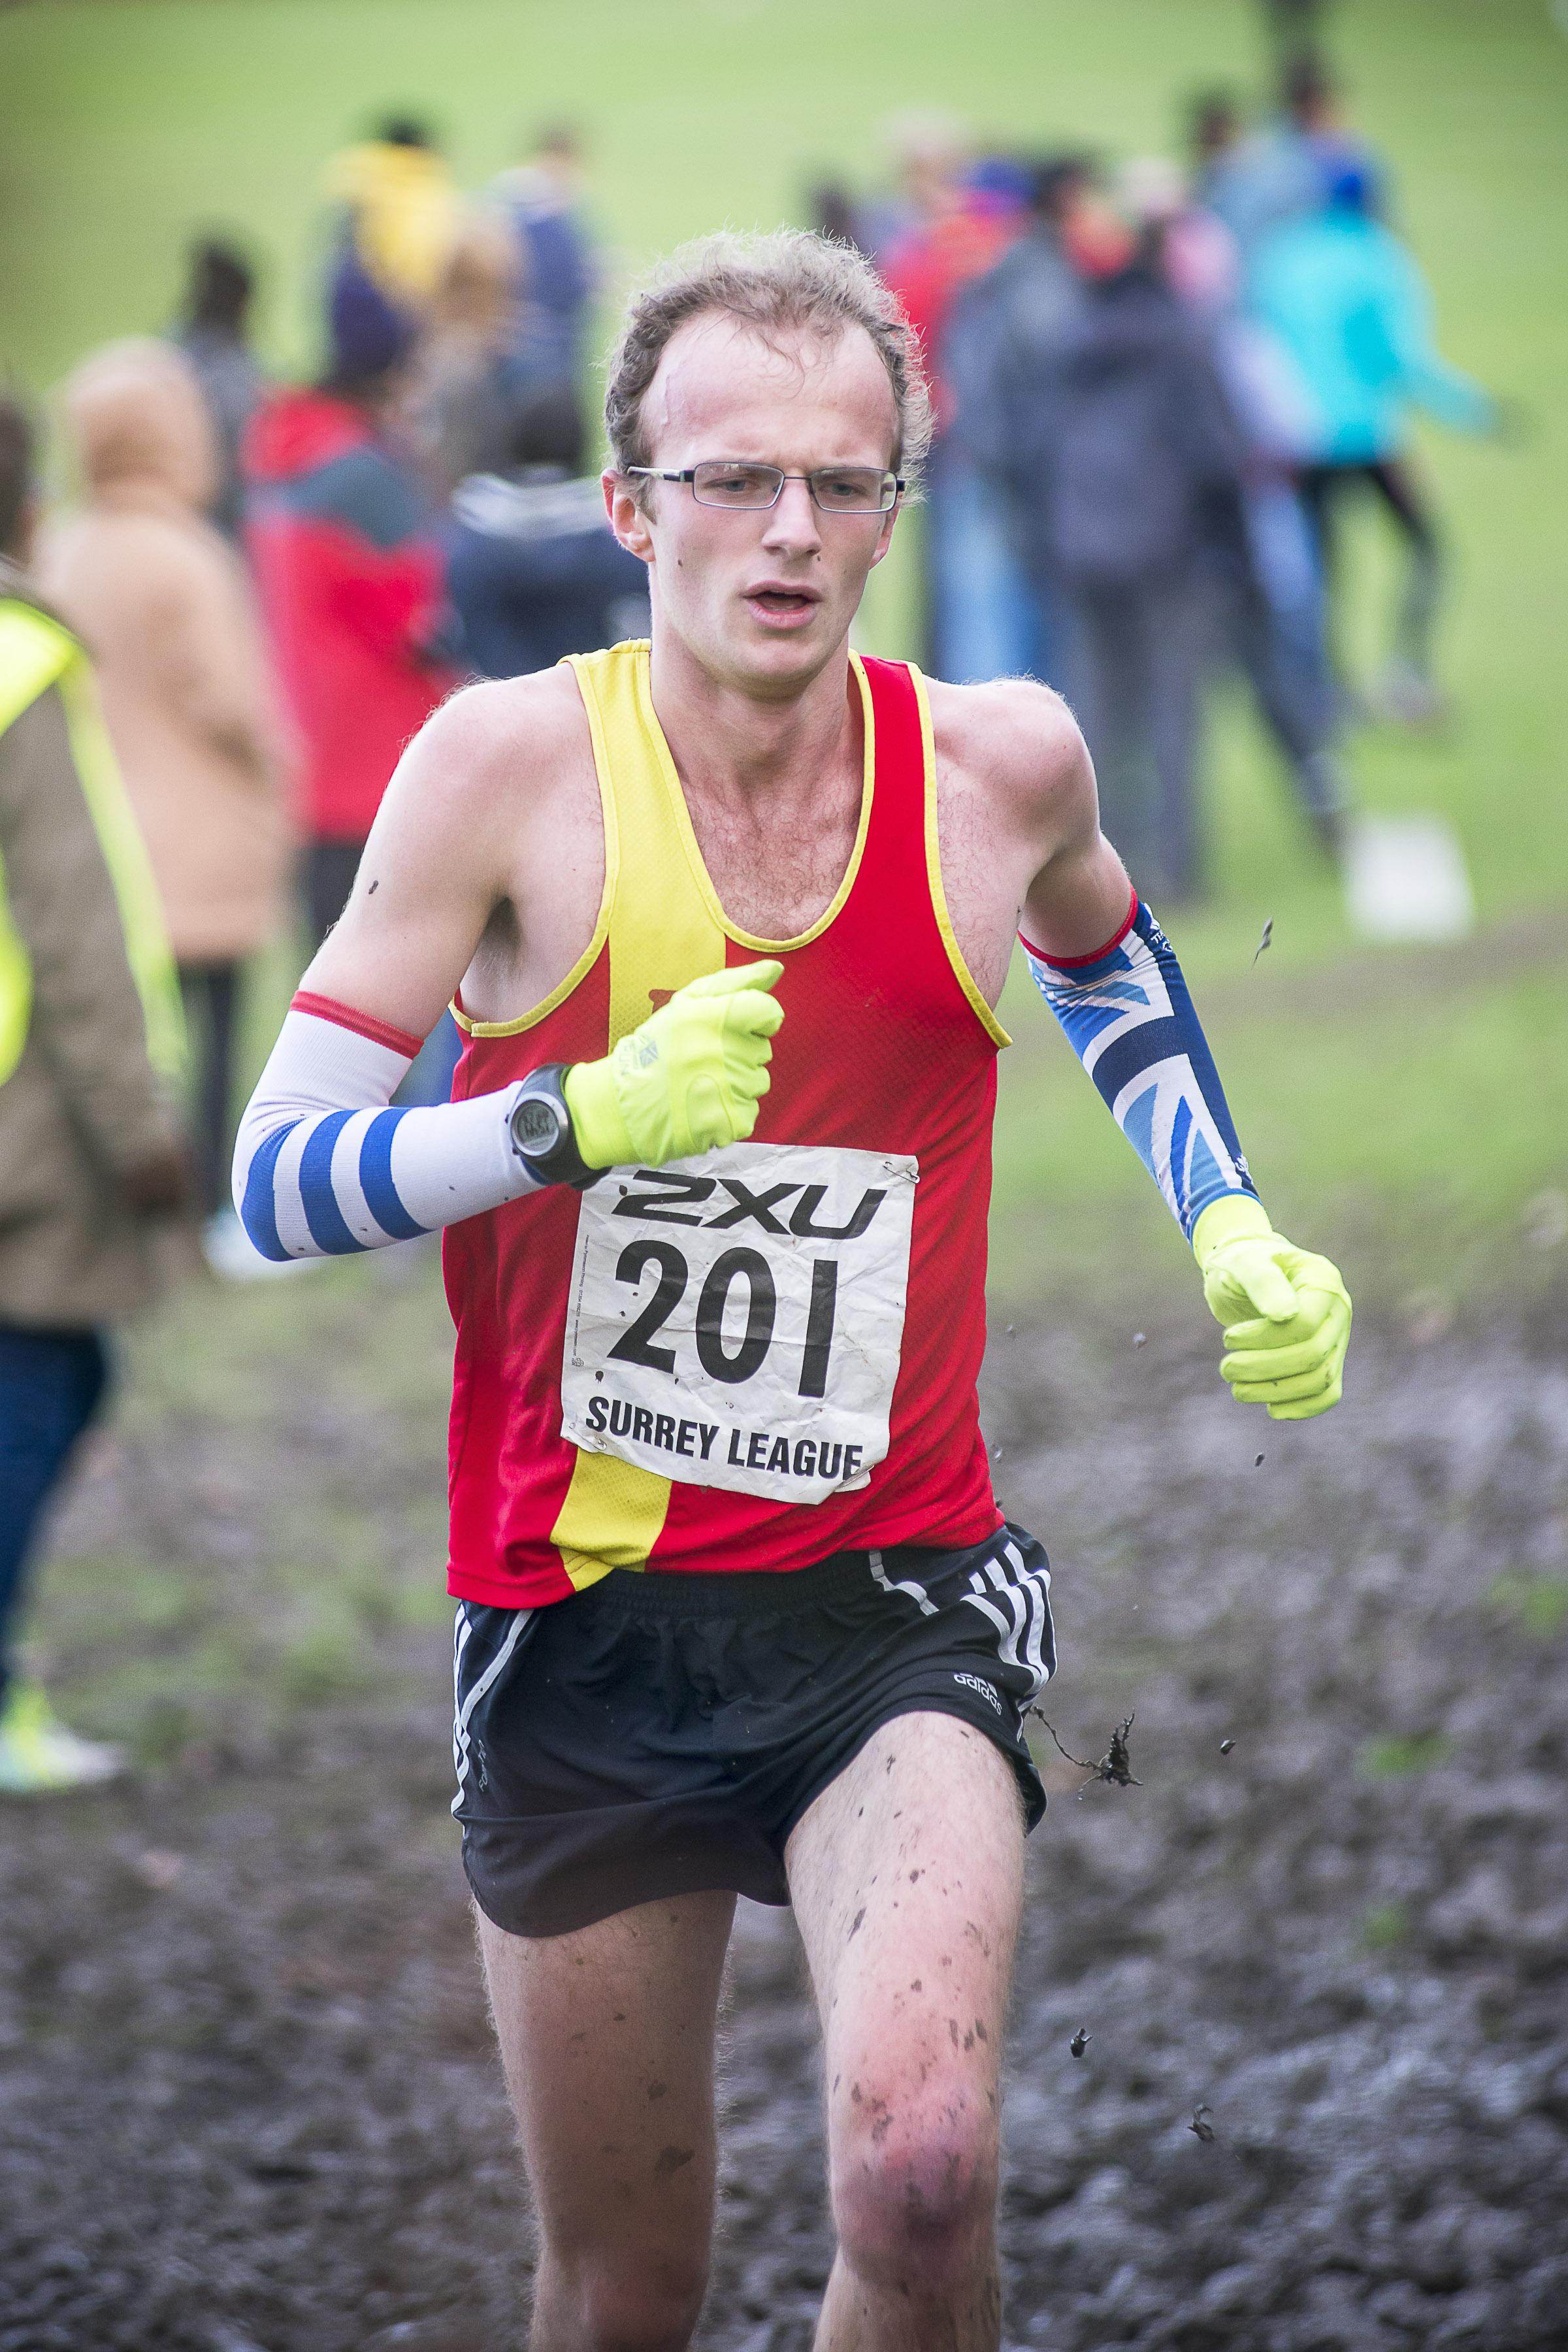 Keep on running: Ollie Garrod of Epsom & Ewell Harriers